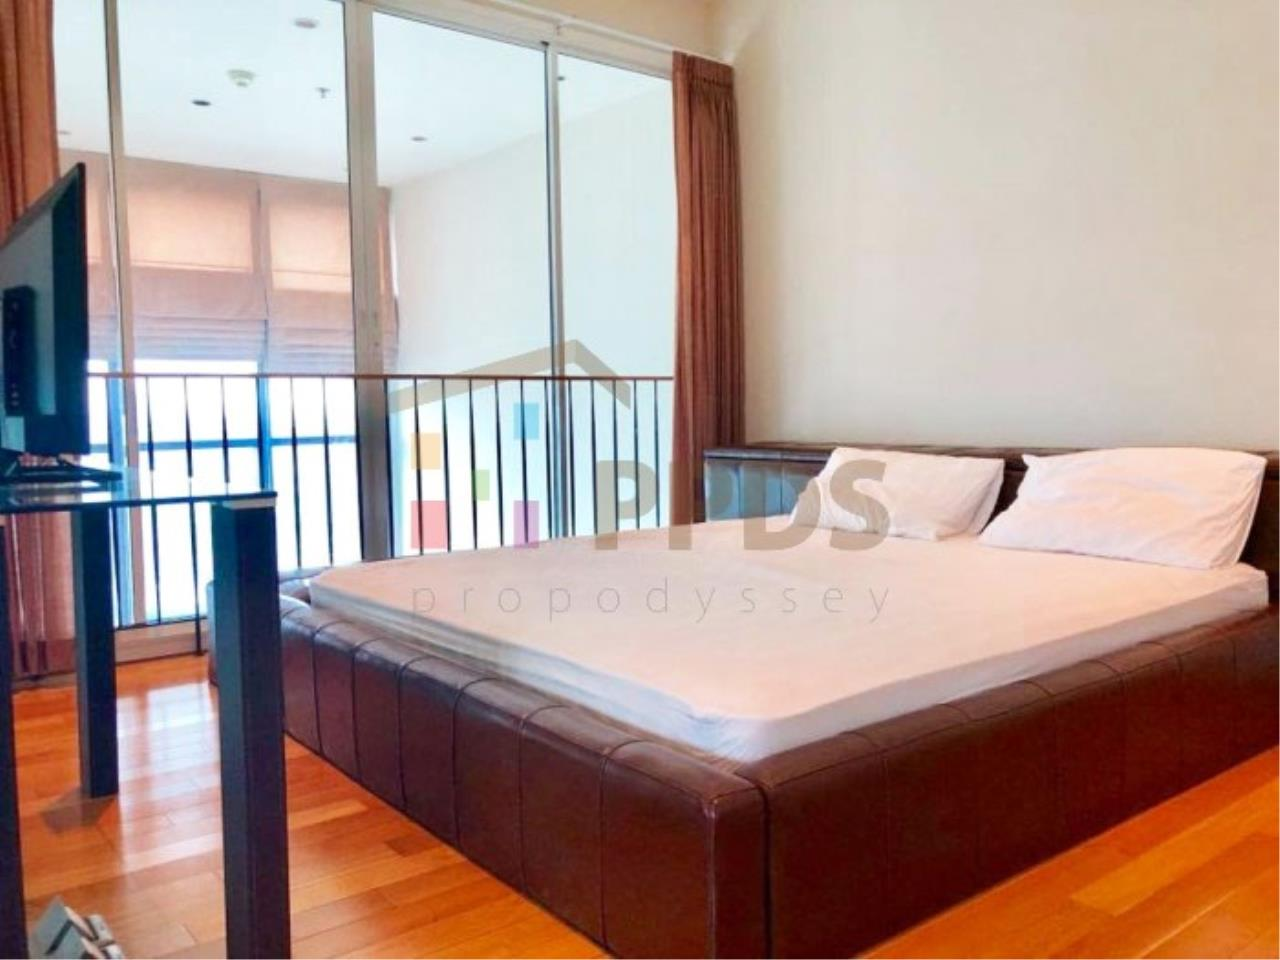 Propodyssey Agency's Duplex one bedroom condo for rent on Sukhumvit soi 24 18